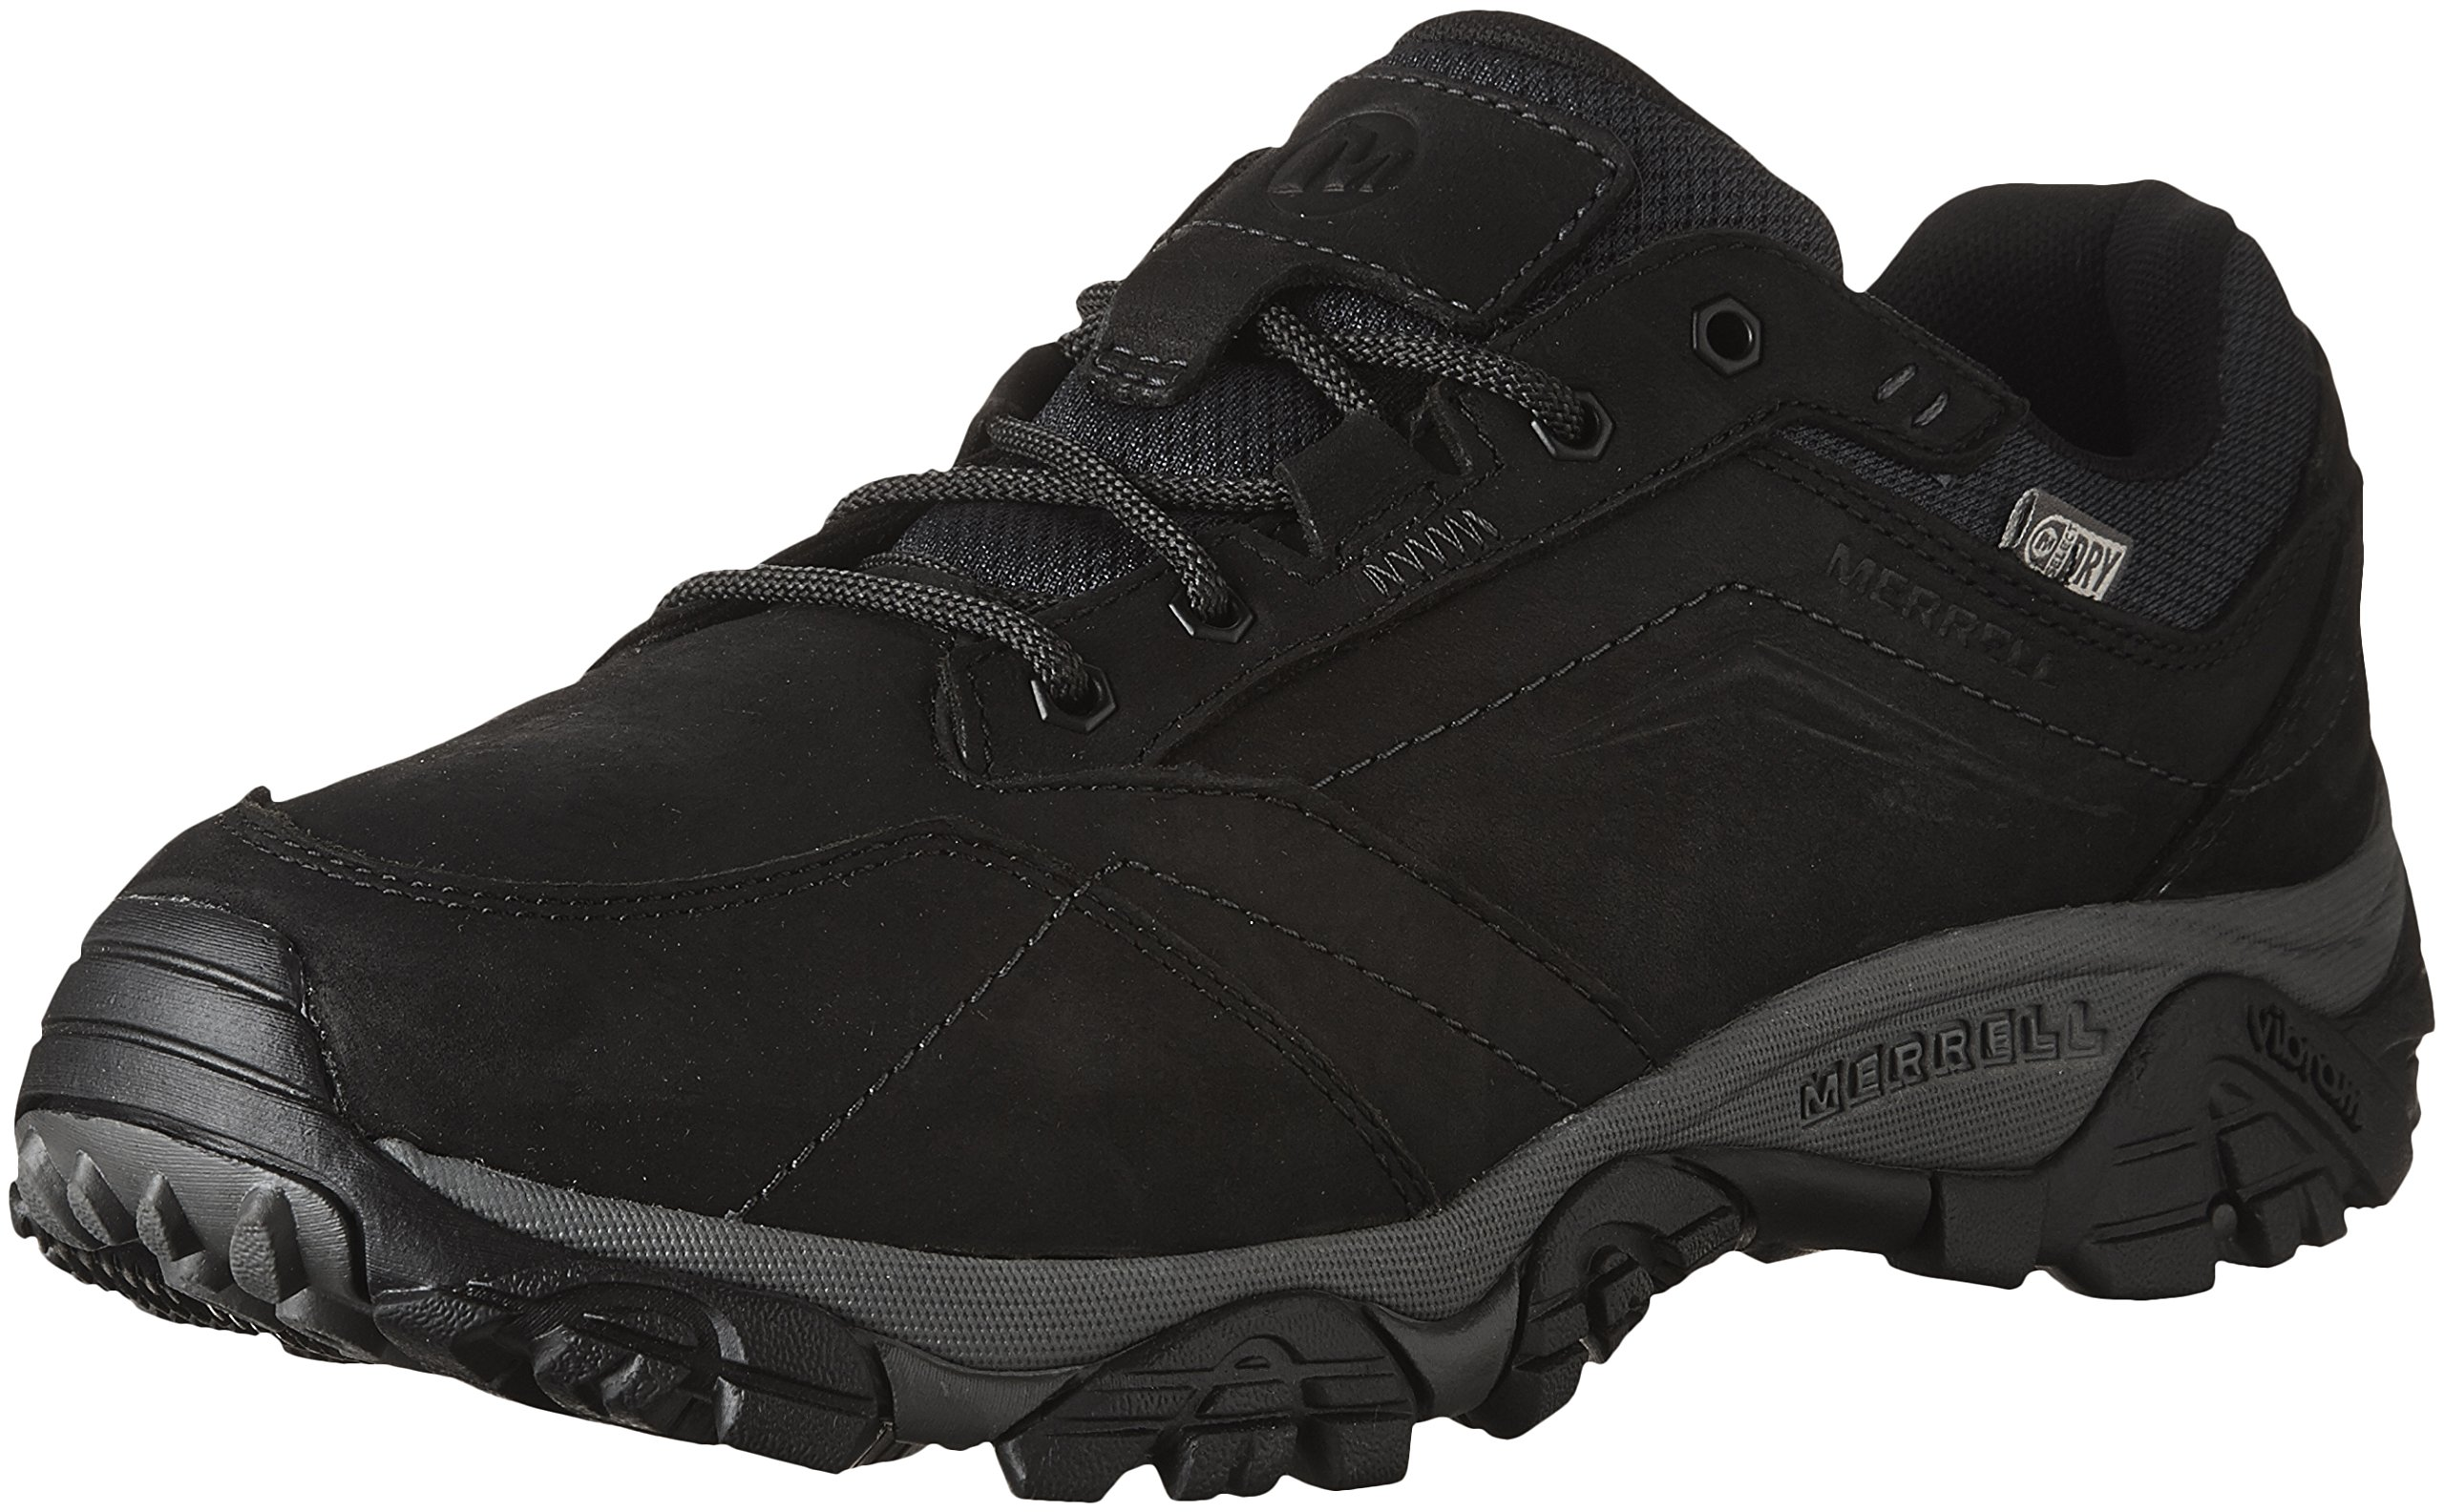 Merrell Men's Moab Adventure Lace Waterproof Hiking Shoe, Black, 11.5 W US